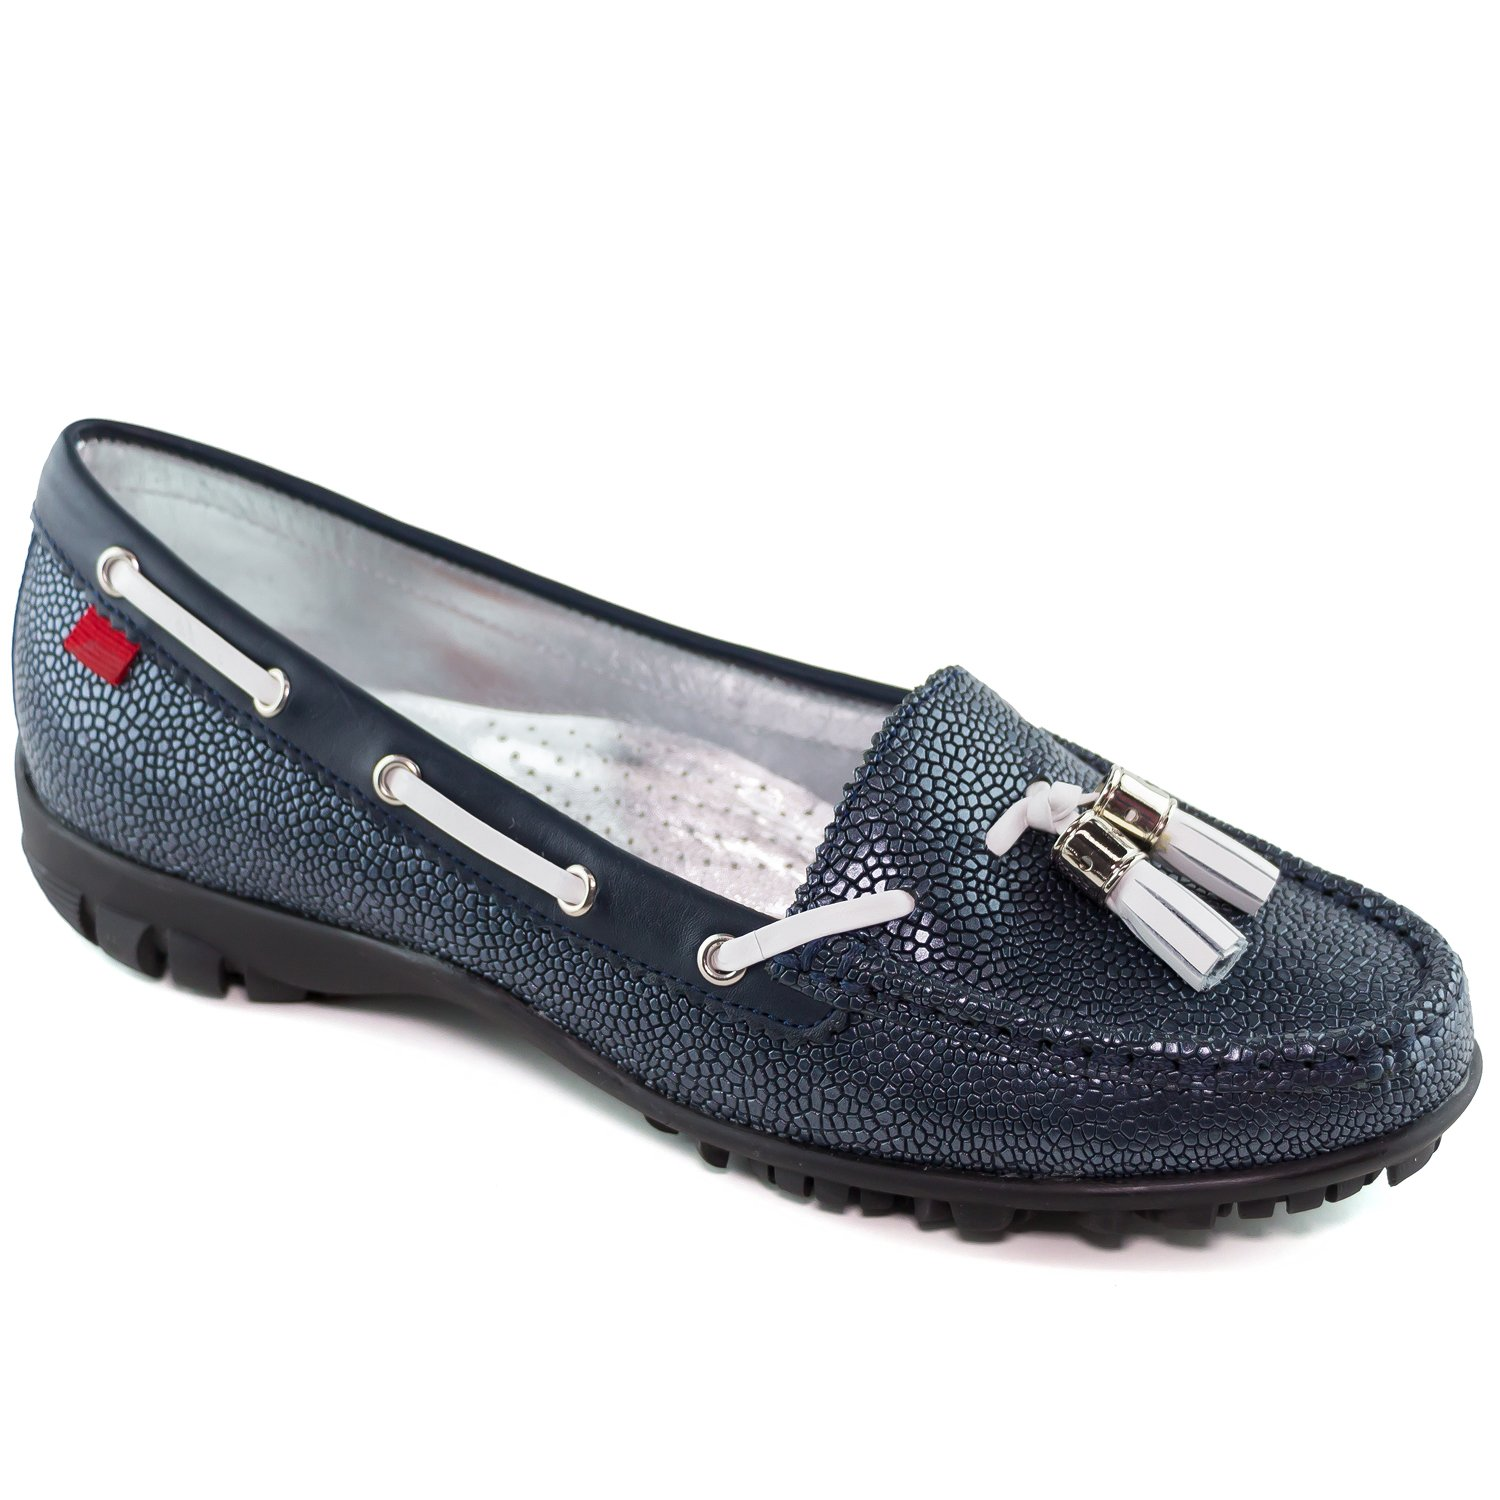 Marc Joseph New York Women's Fashion Shoes Spring Street Golf Navy Pebble With Tassel Moccassin Size 6.5 by Marc Joseph New York